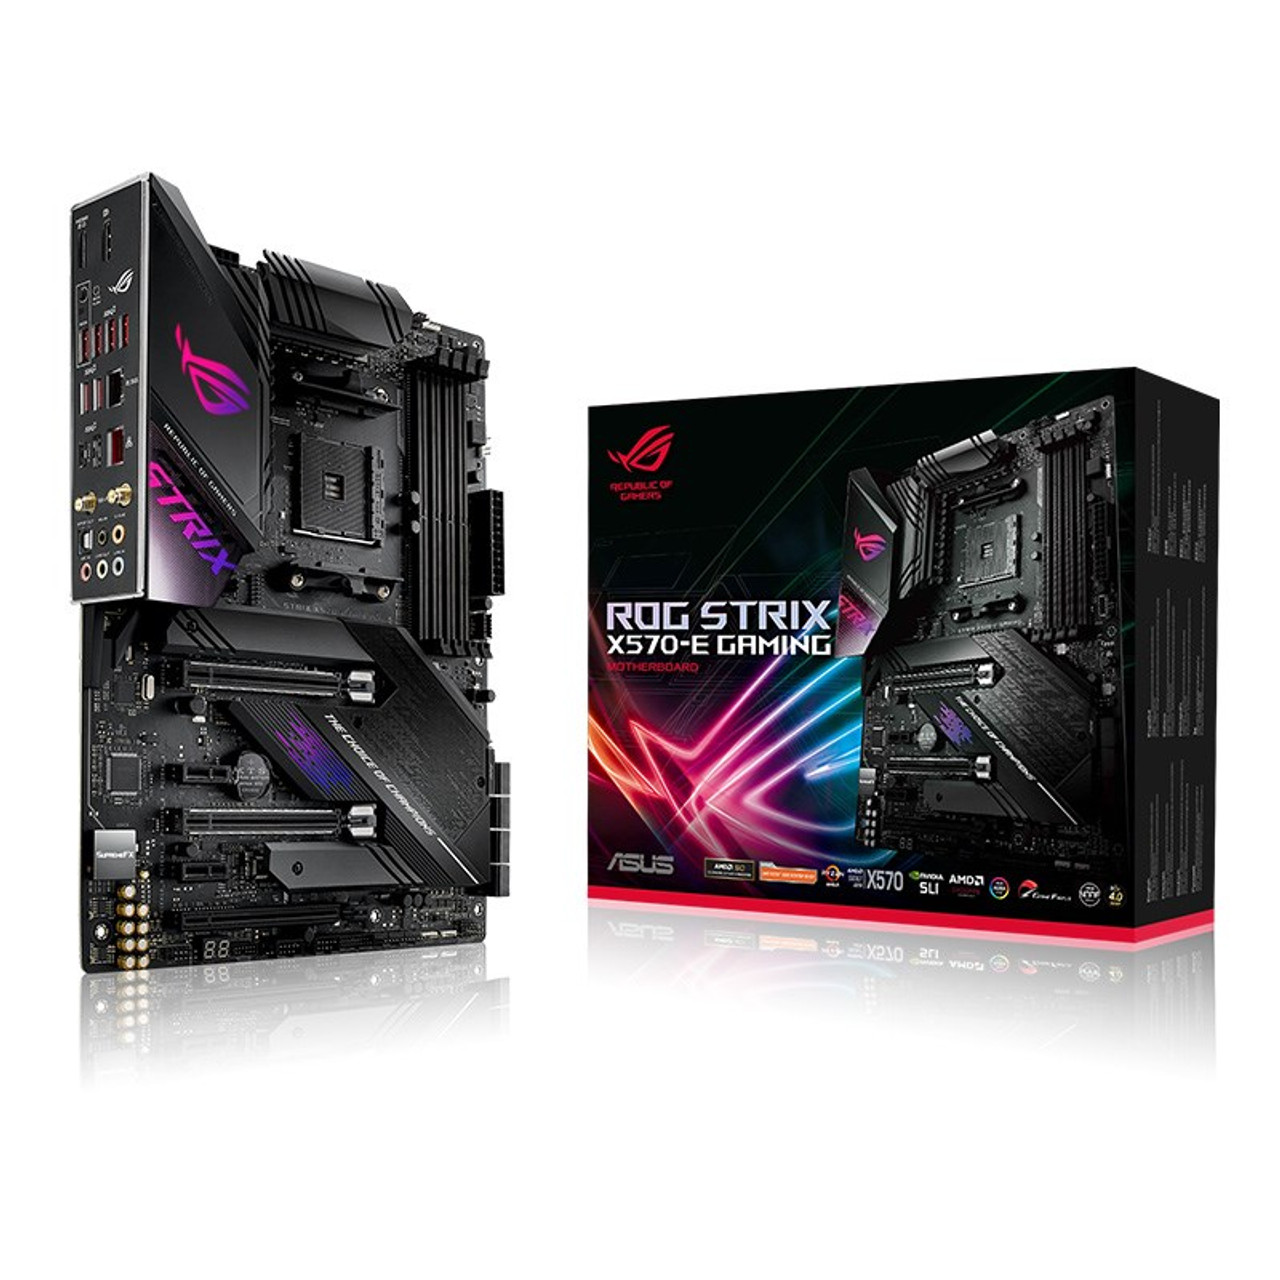 Product image for Asus ROG Strix X570-E Gaming Motherboard | CX Computer Superstore